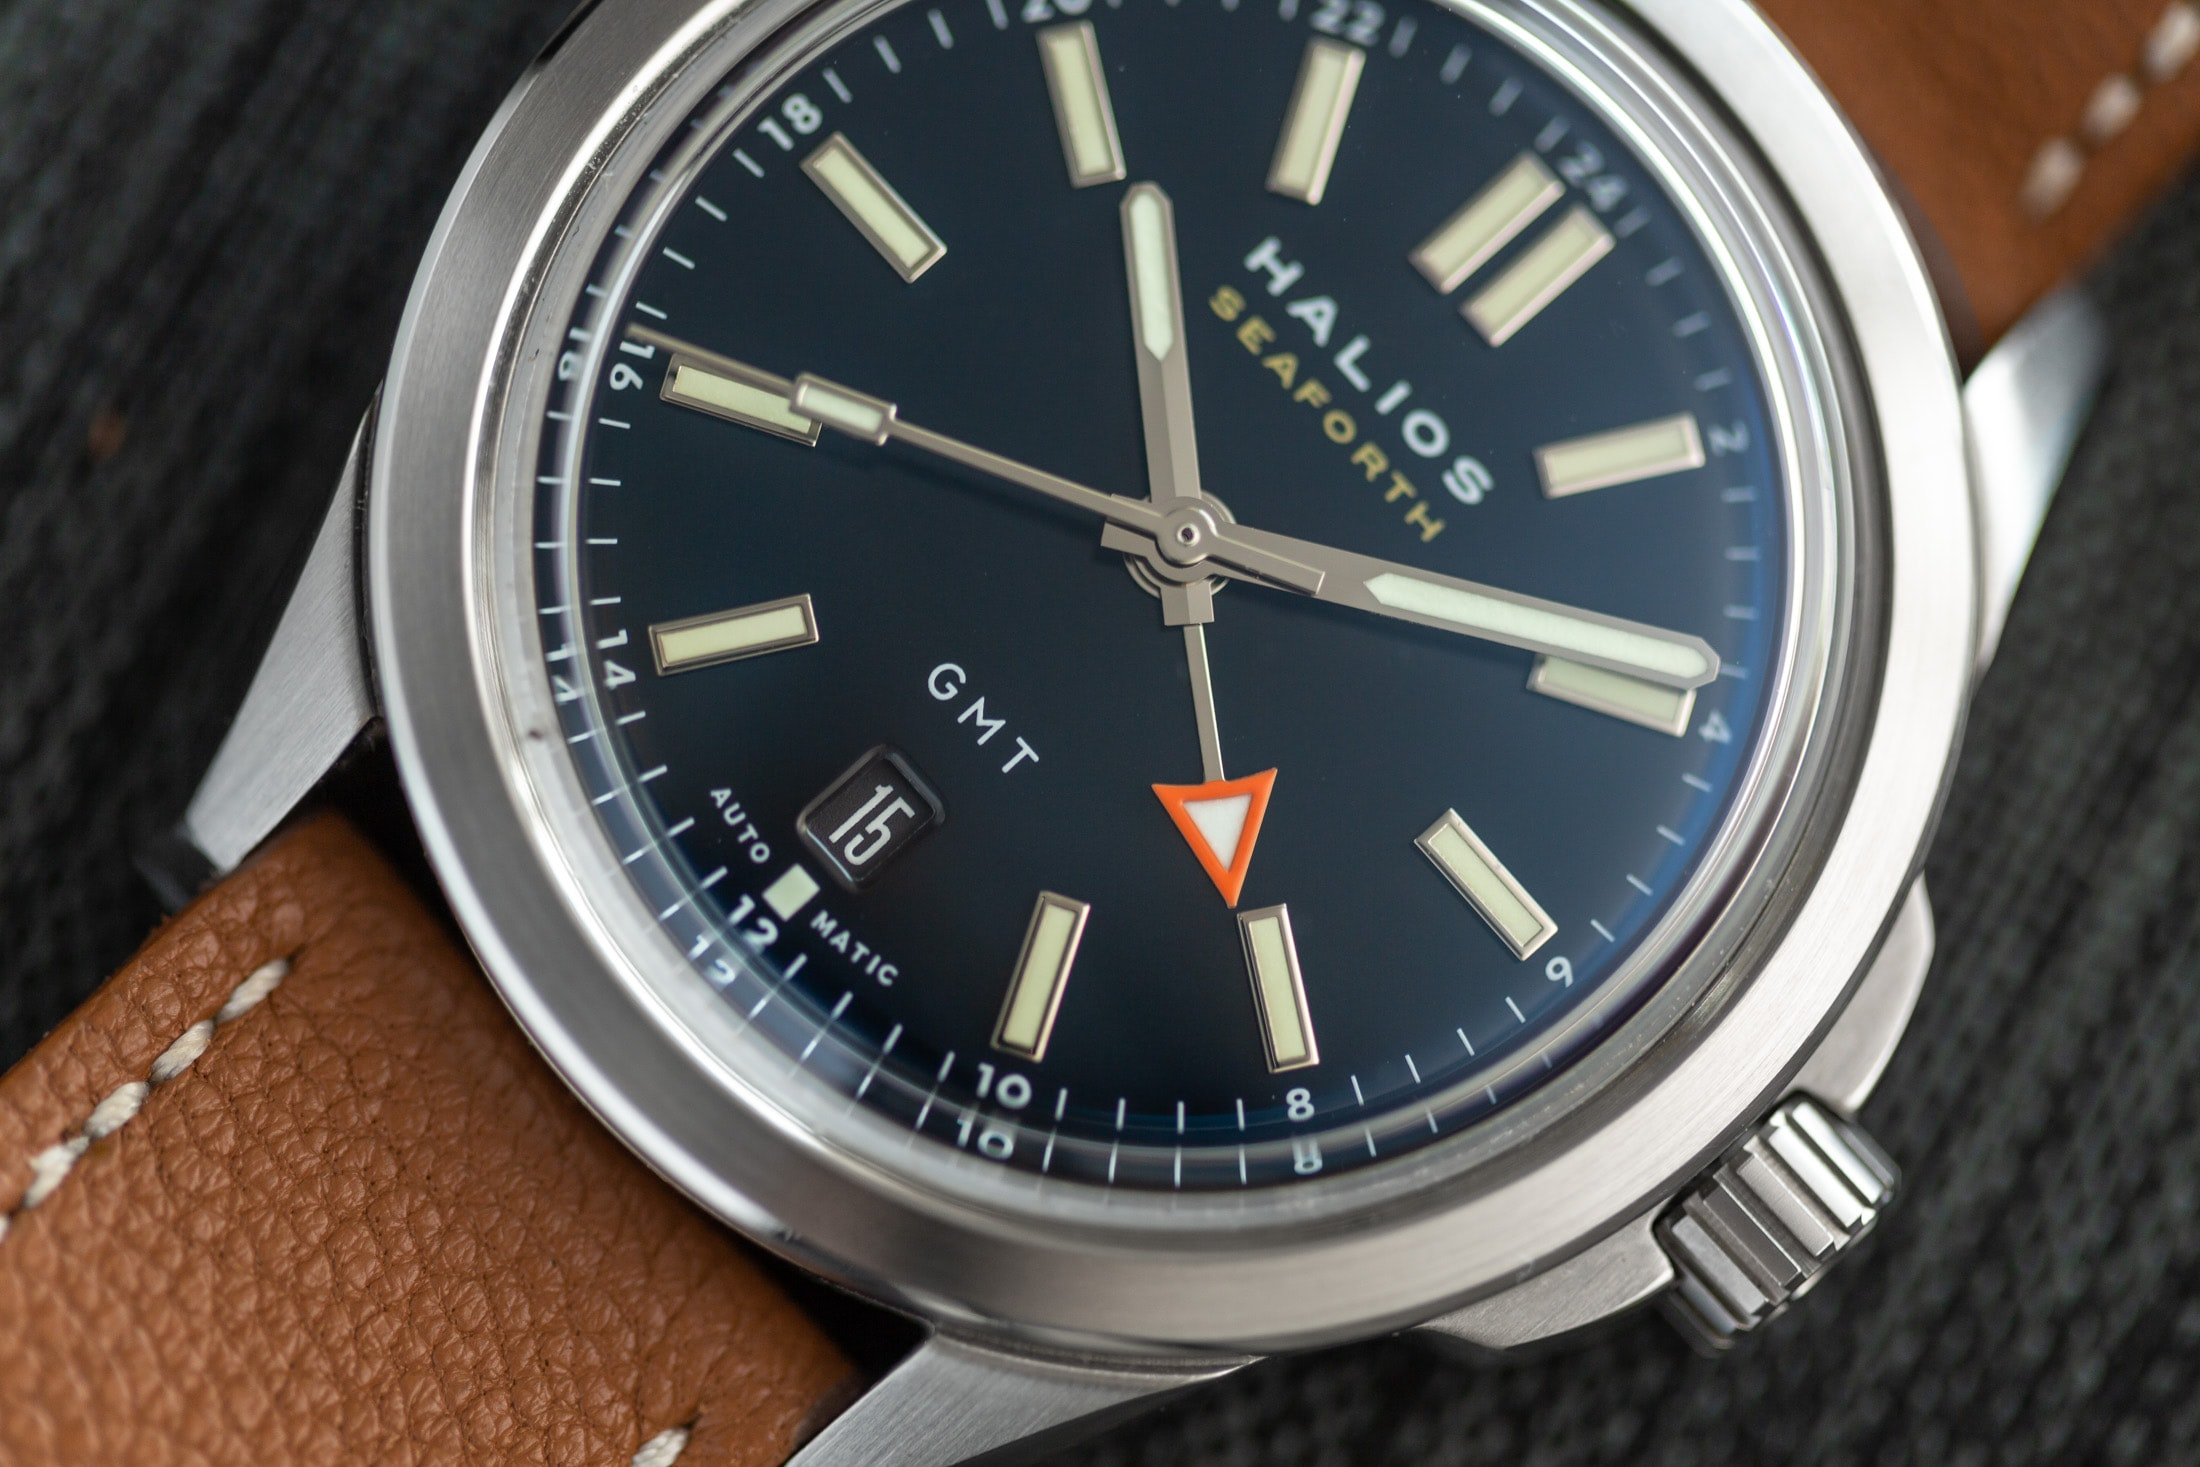 Introducing: The Halios Seaforth GMT (Live Pics & Pricing) Halios Seaforth GMT 2